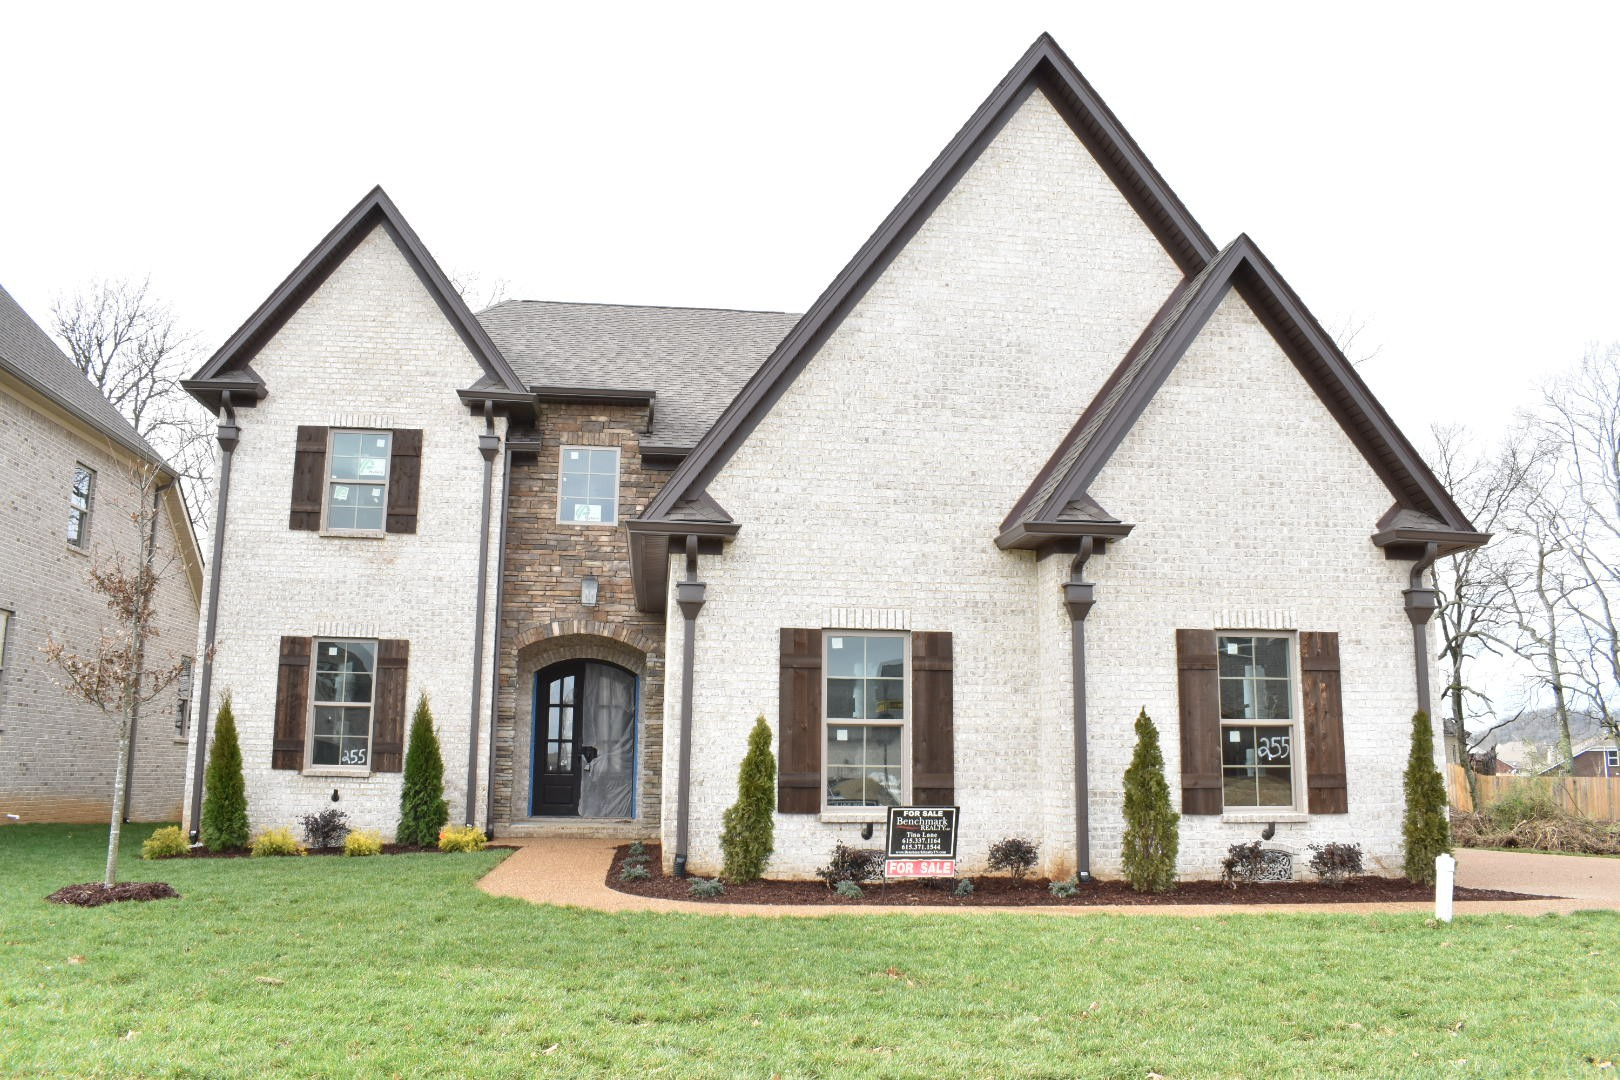 1573 Bunbury Dr (255), Thompsons Station, TN 37179 - Thompsons Station, TN real estate listing